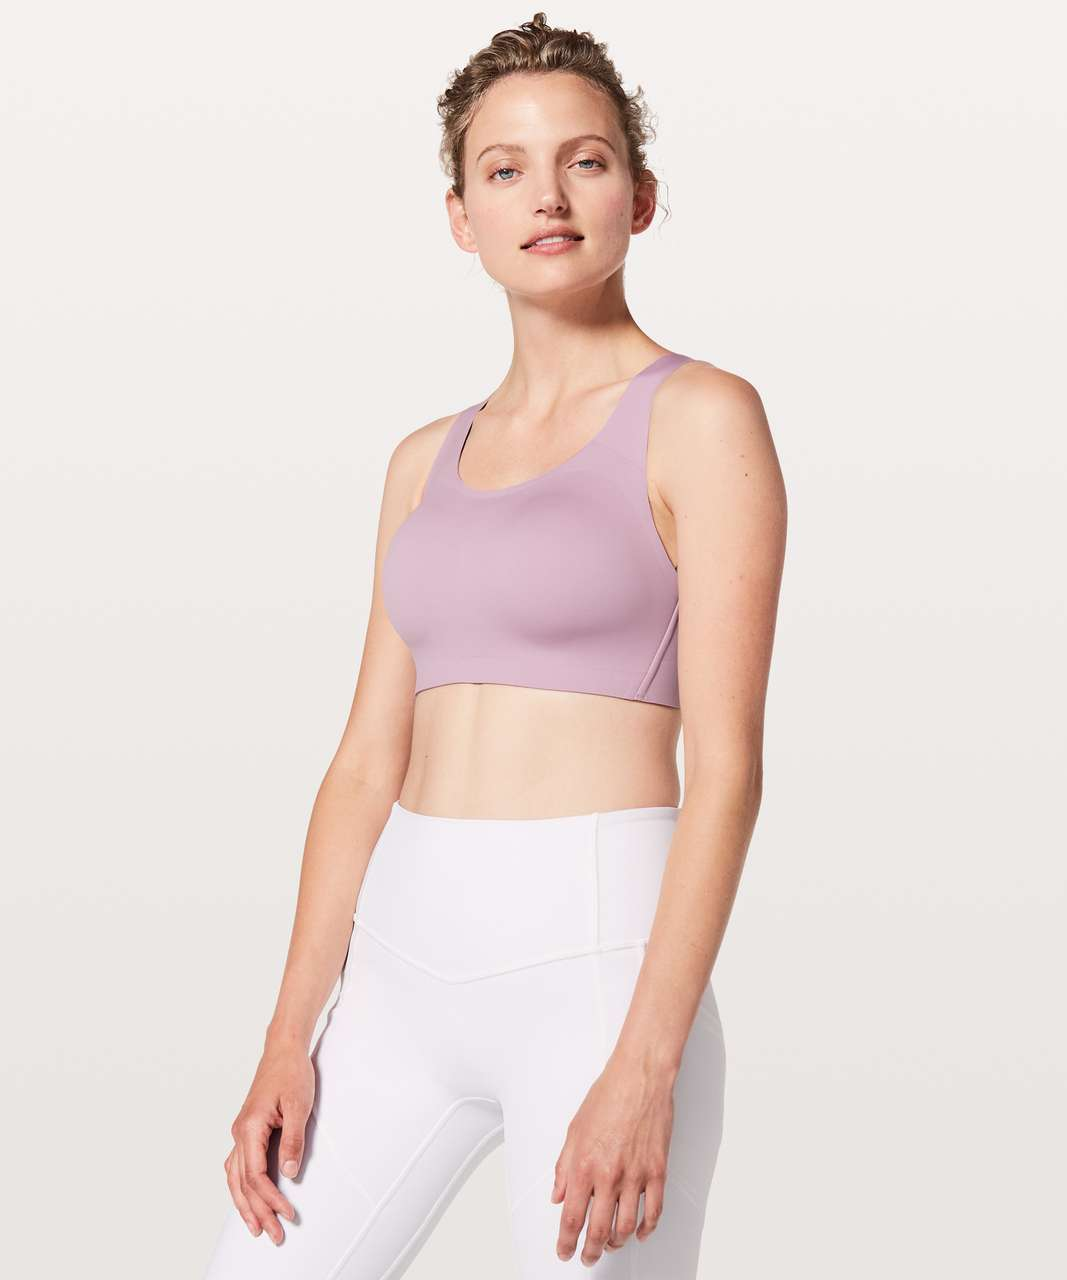 f86c768fc3286 Lululemon Enlite Bra - Rose Blush